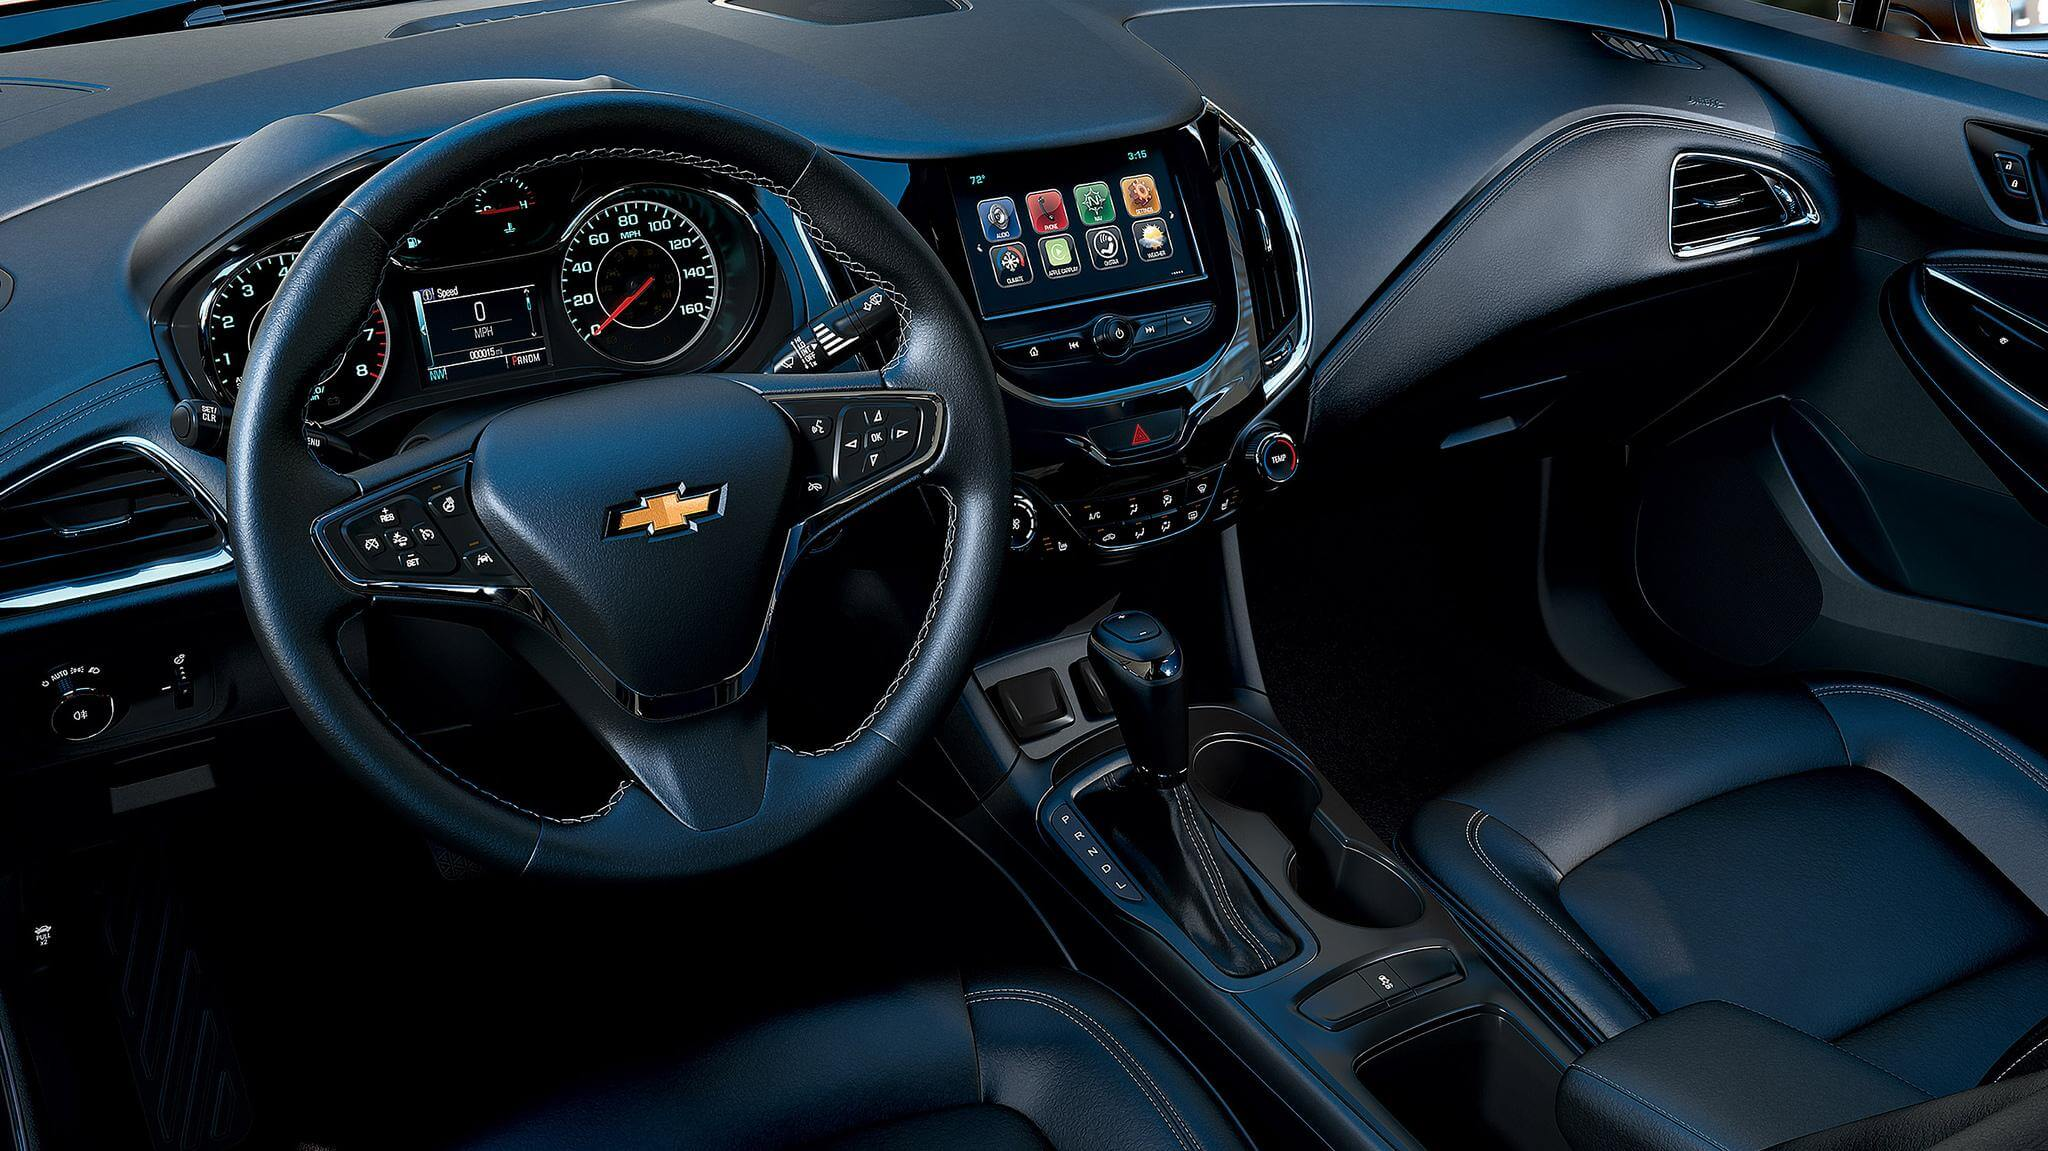 Chevy Cruze interior